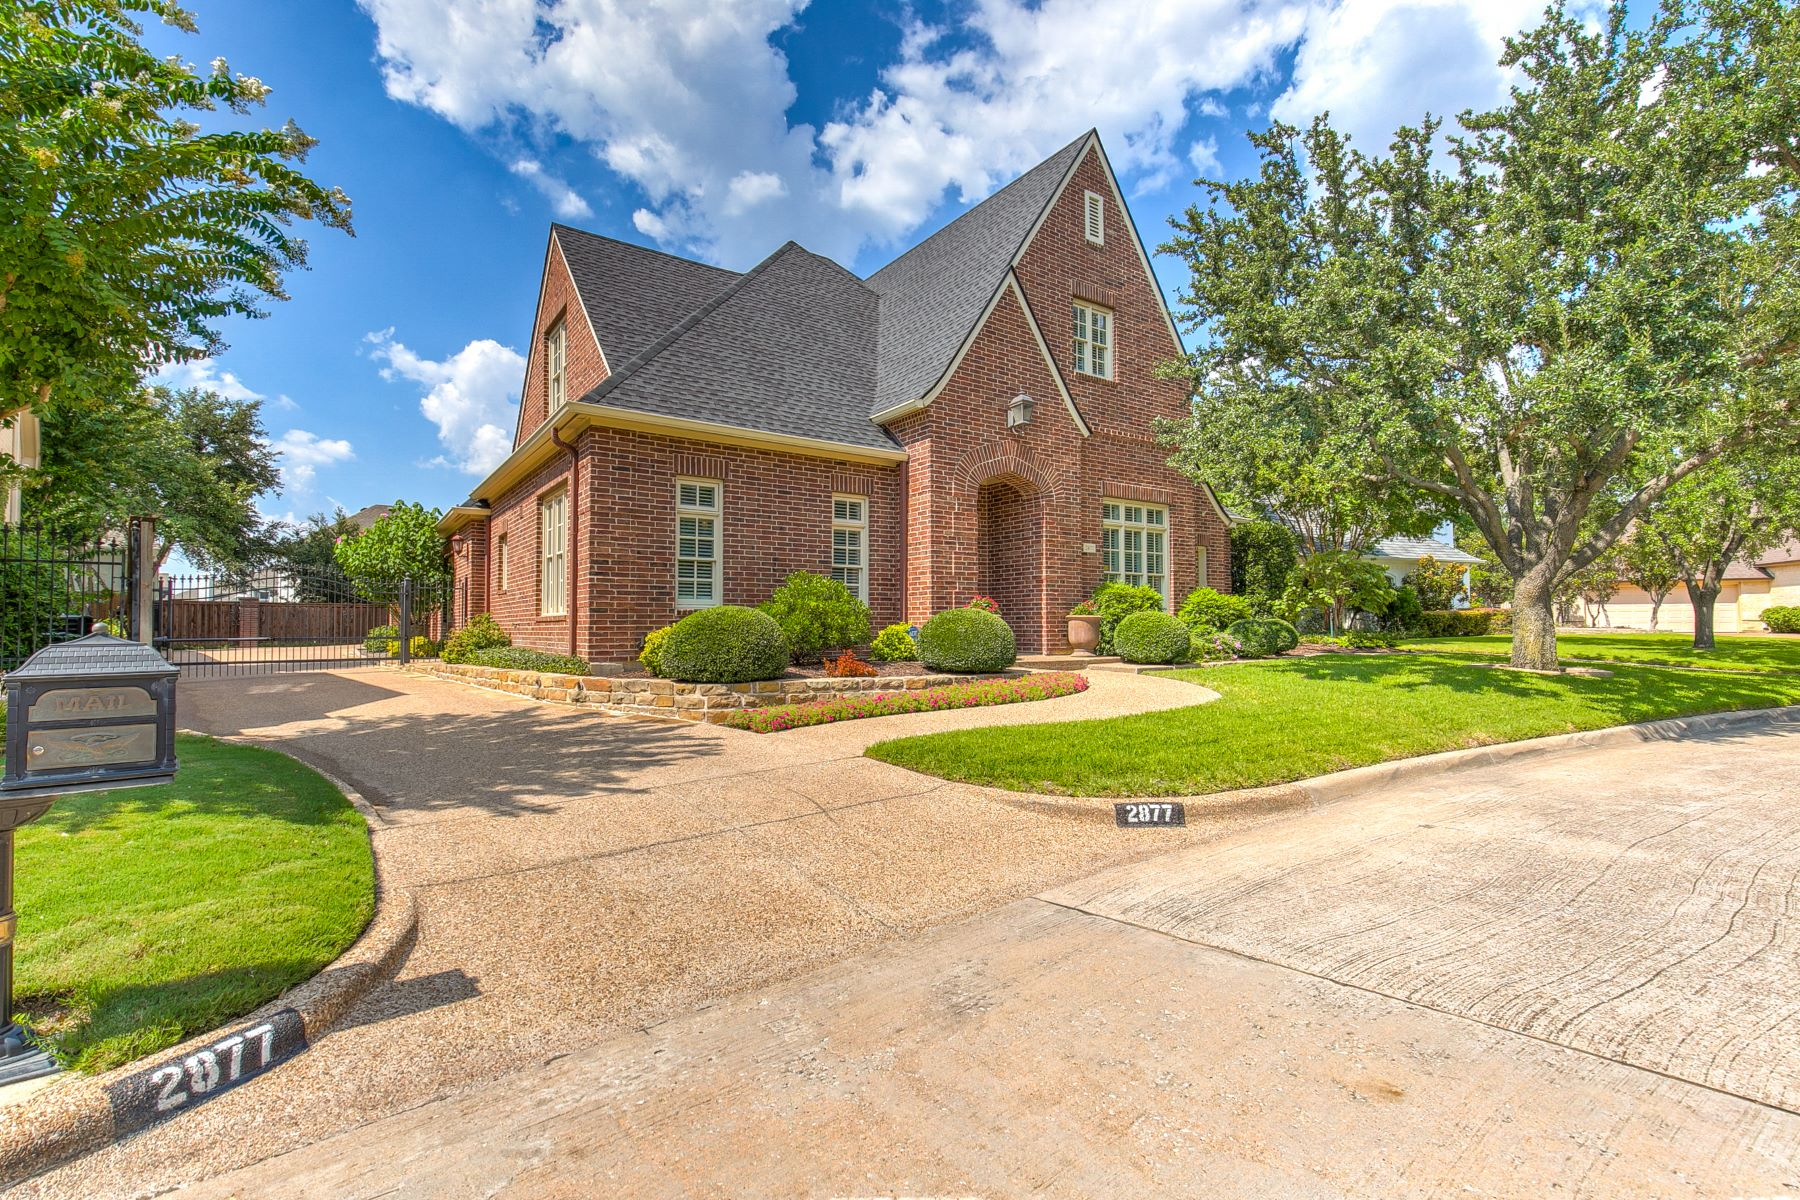 Single Family Homes for Sale at 2877 Manorwood Trail Fort Worth, Texas 76019 United States